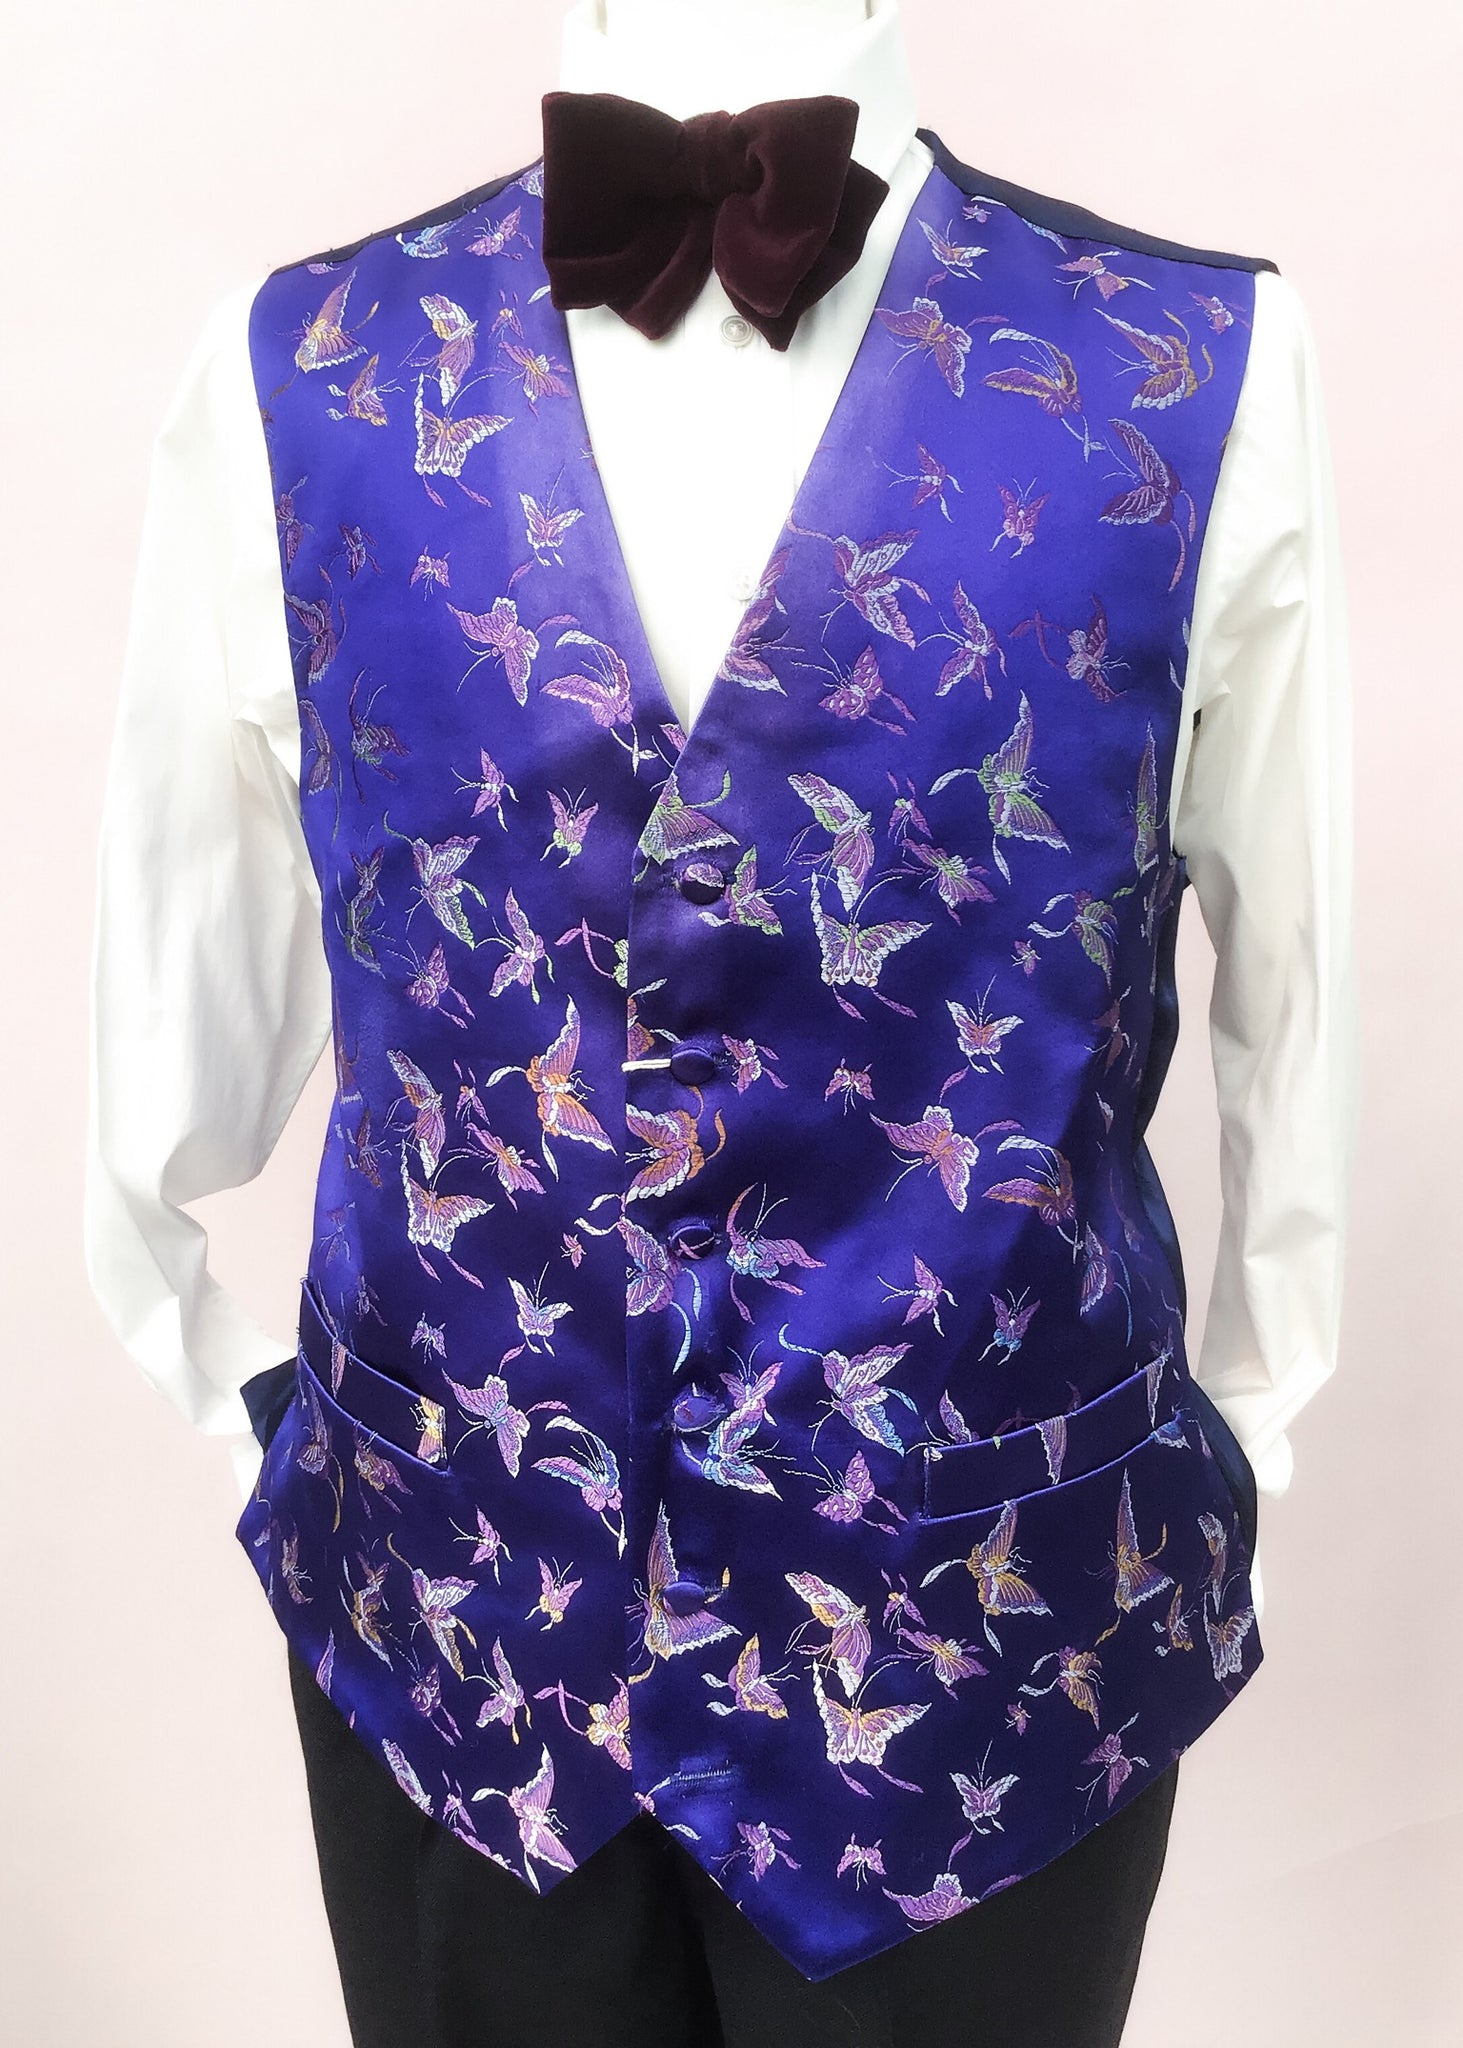 Blue silk brocade waistcoat with butterfly design to fit 44 chest